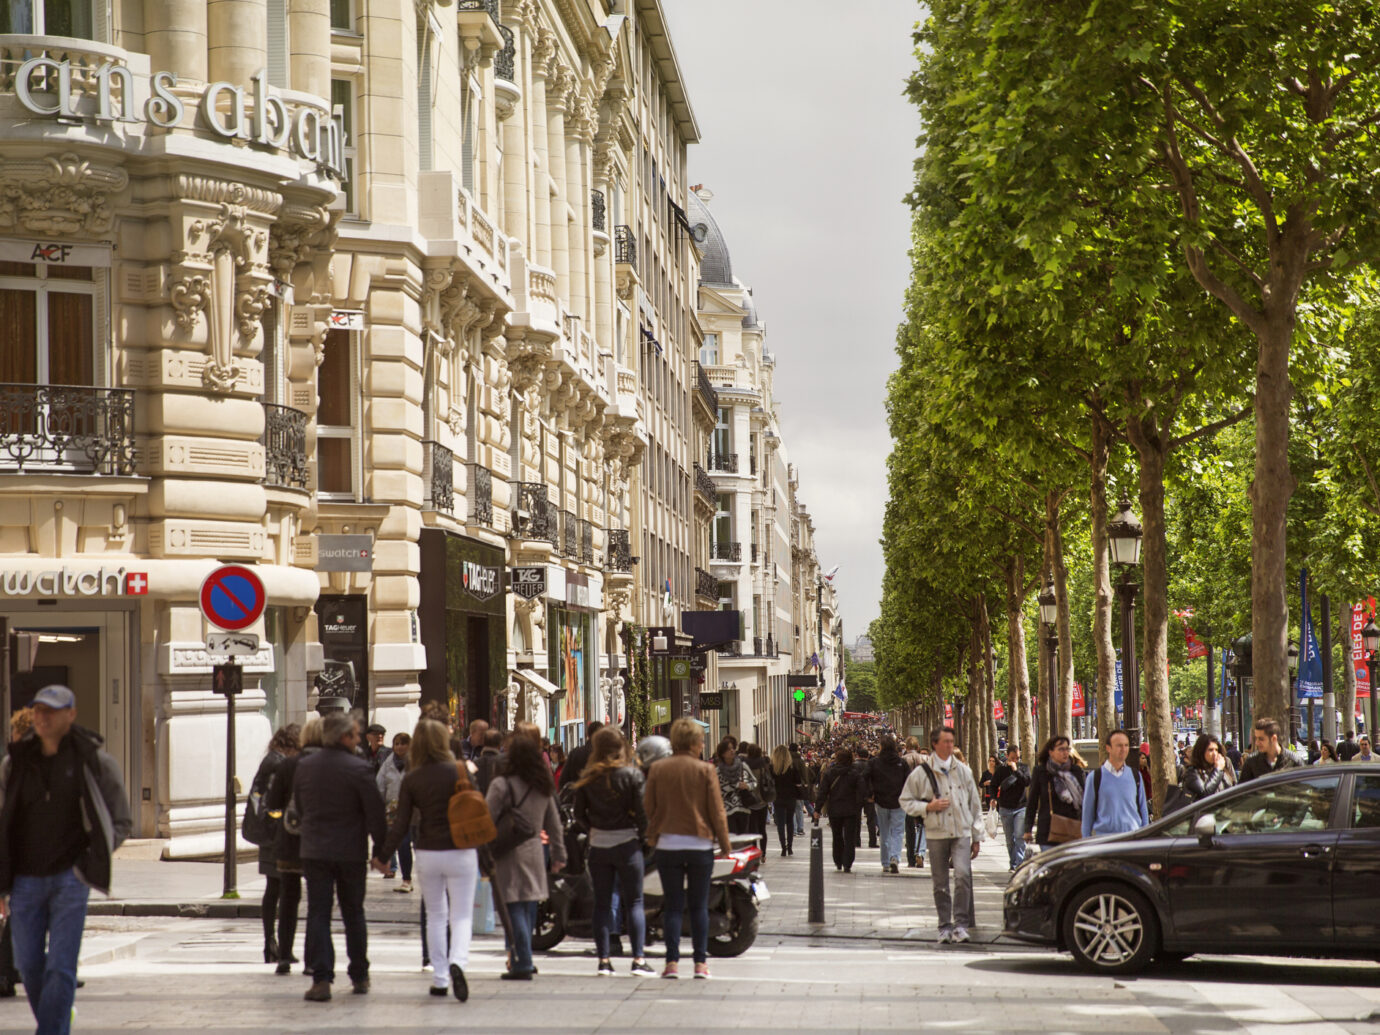 Avenue des Champs-Elysees,, camera locked down.